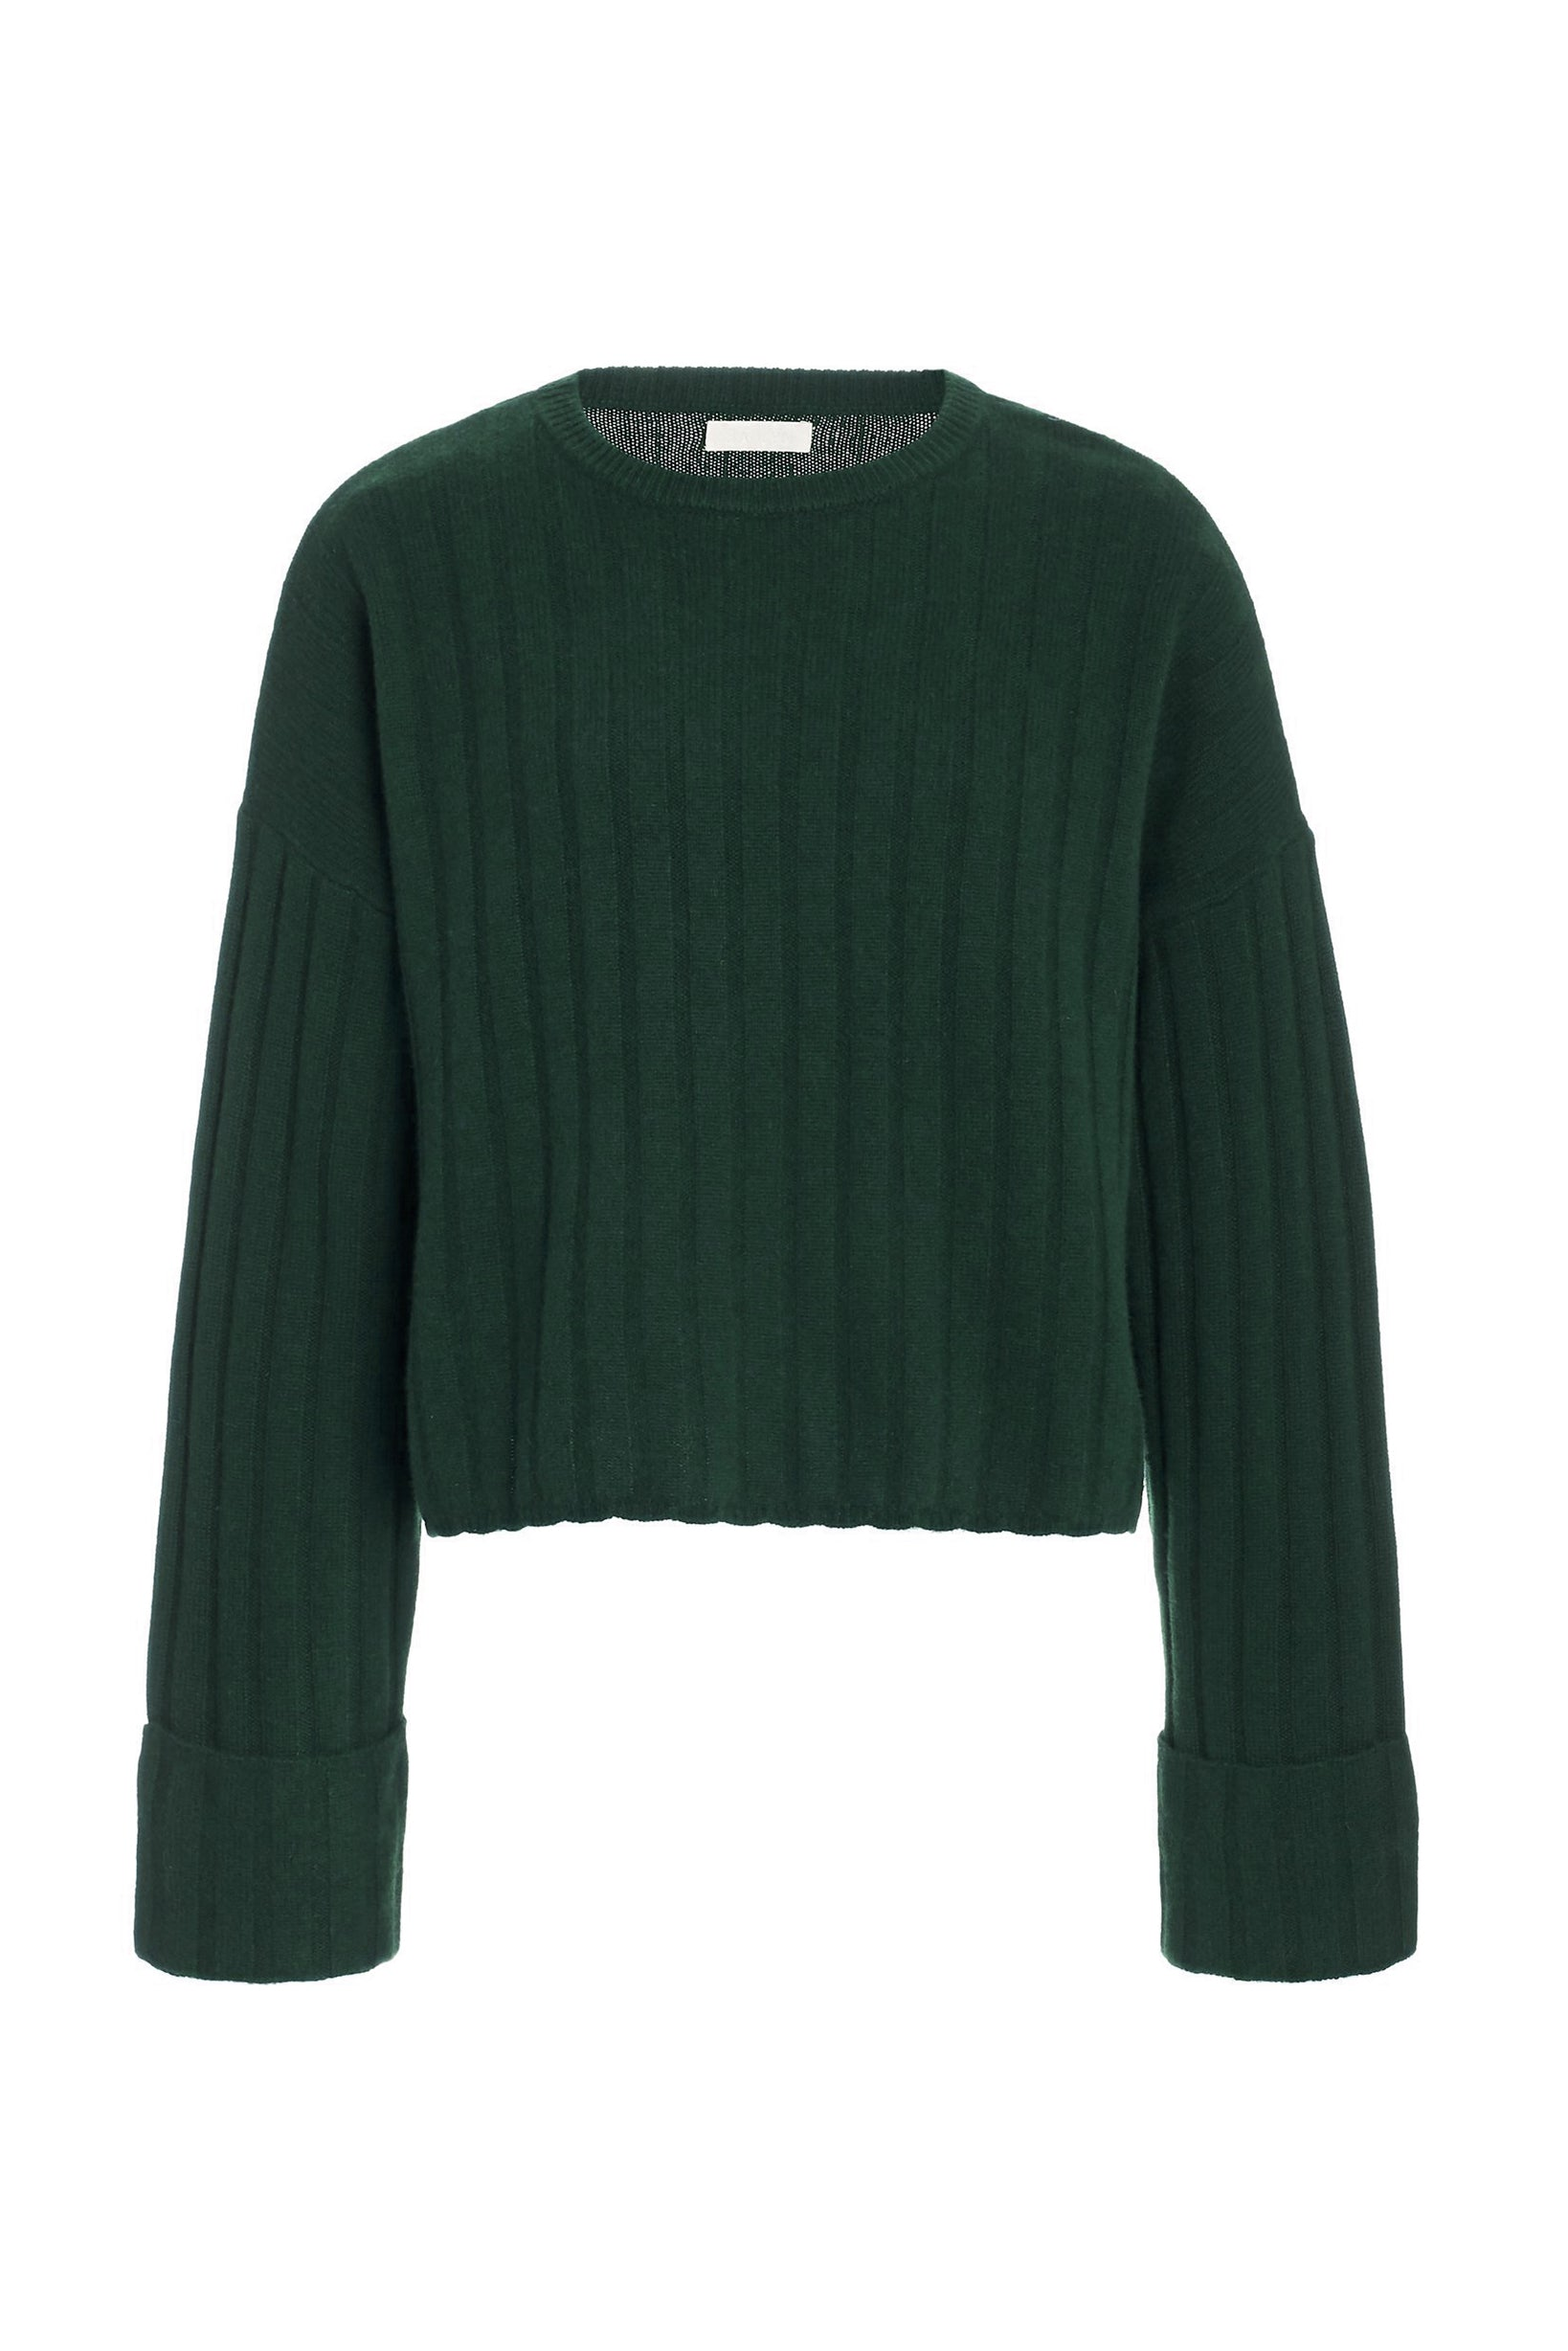 Nathan Cashmere Sweater in Hunter Green